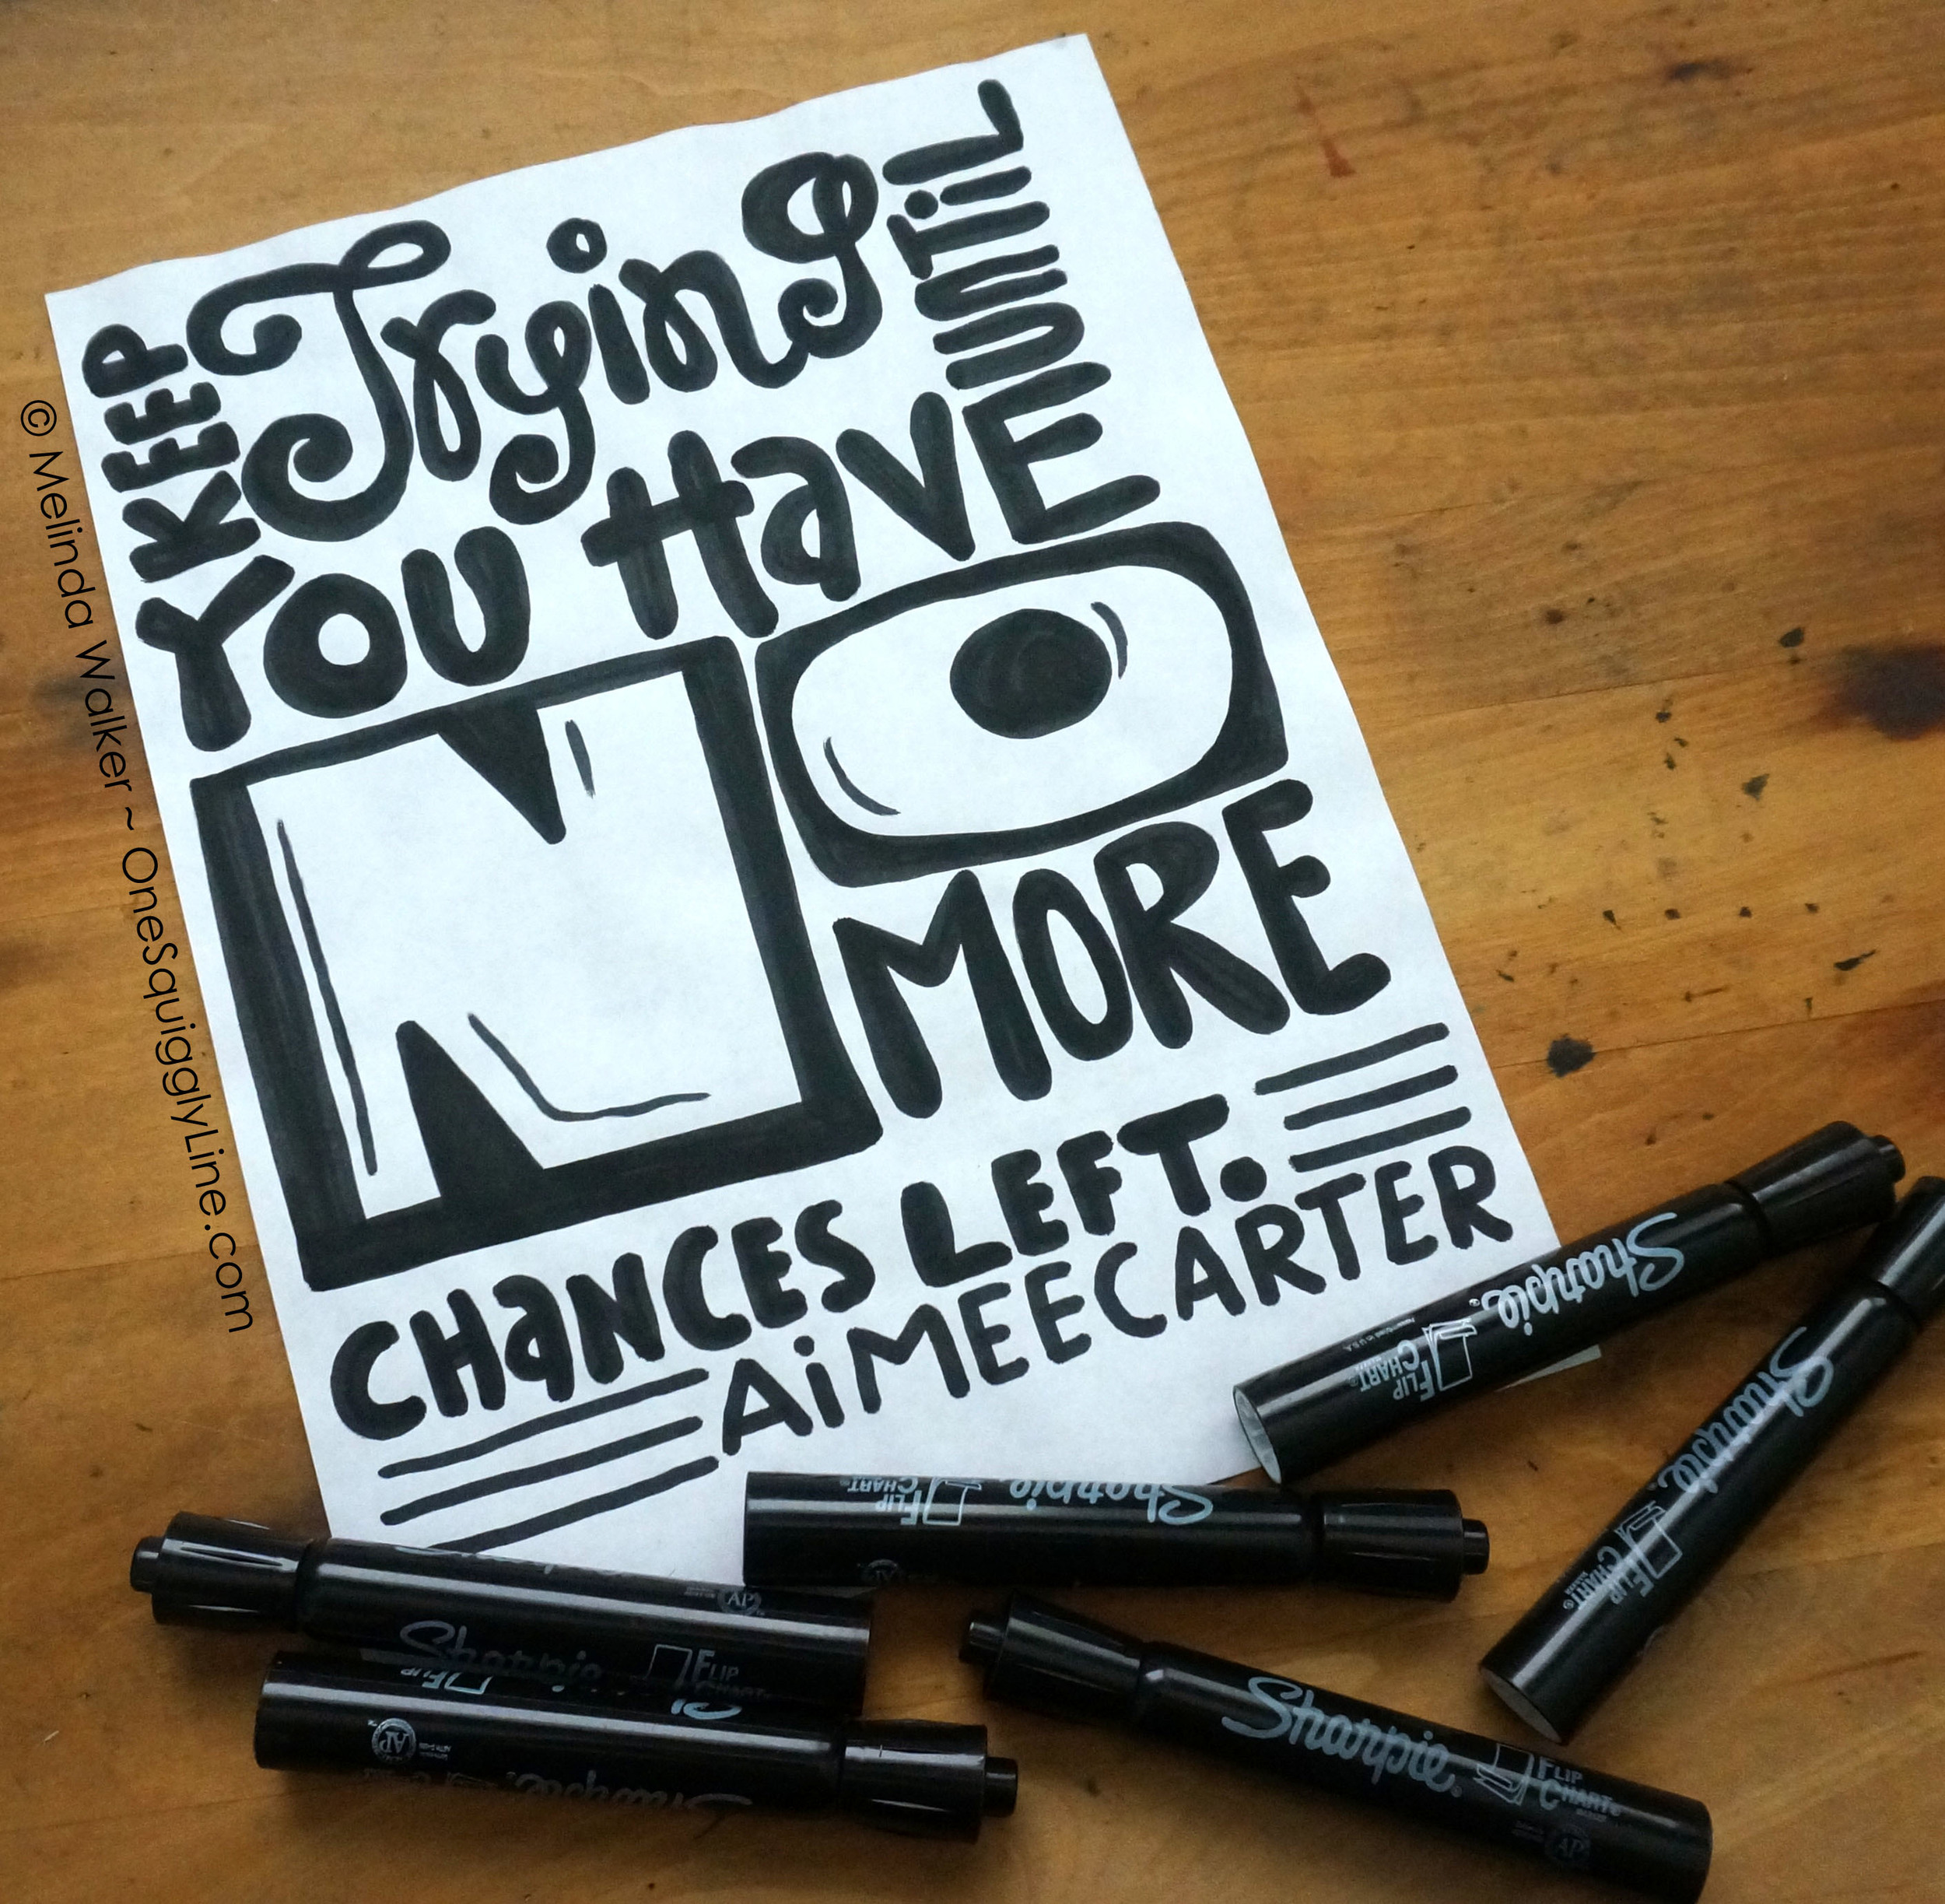 Keep Trying Till You Have No Chances Left - Aimee Carter Quote